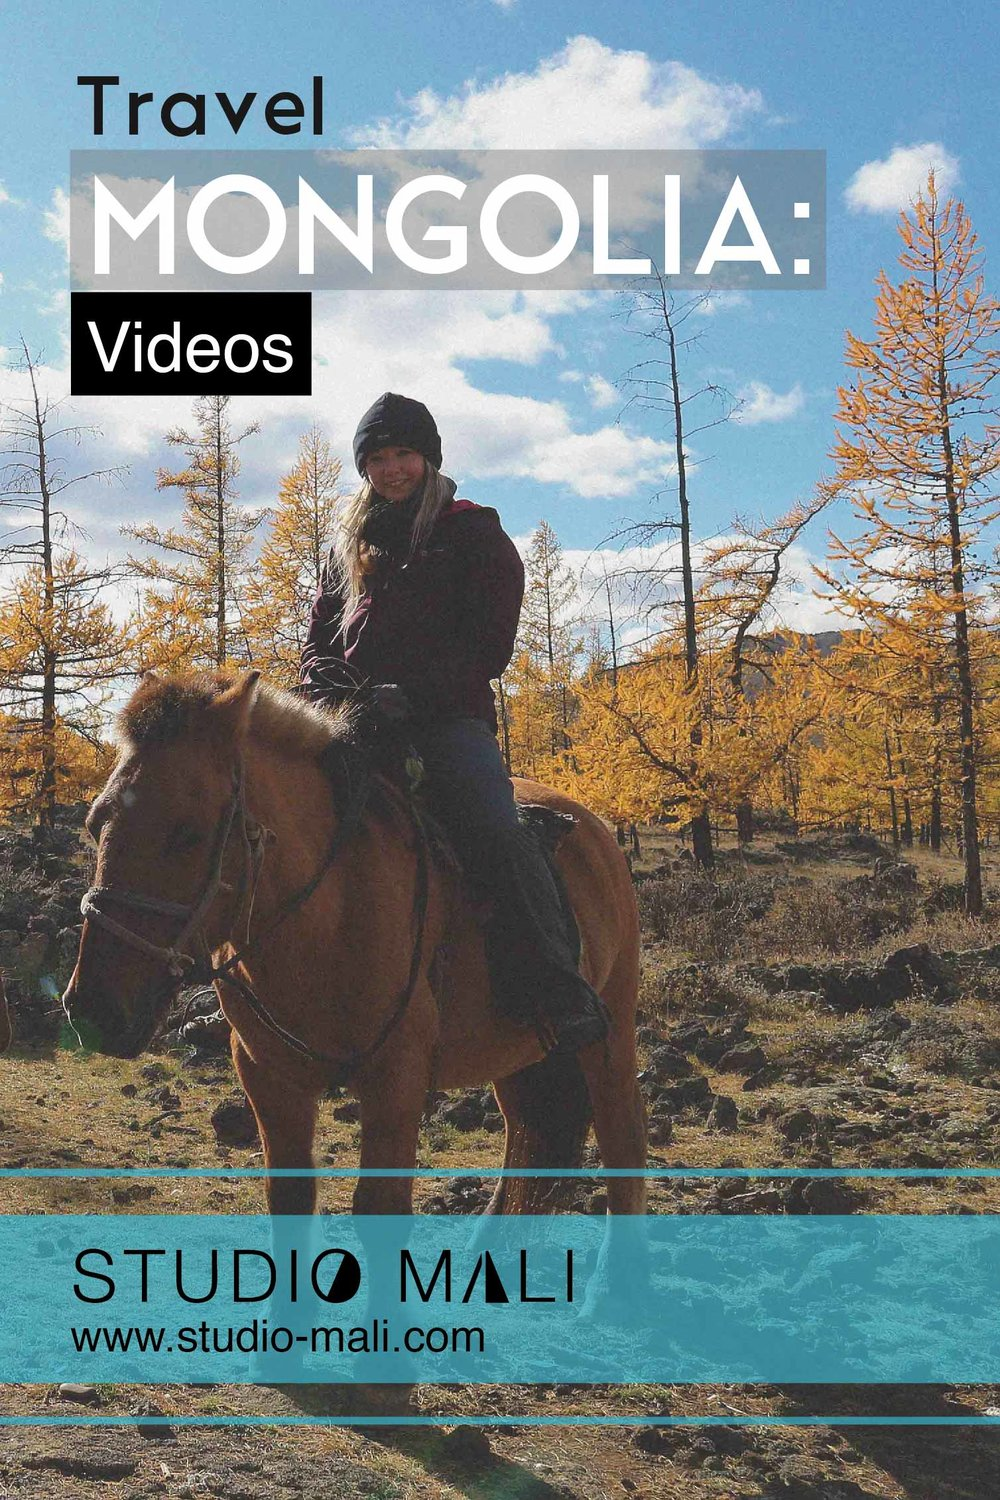 Mongolia Videos, By Studio Mali